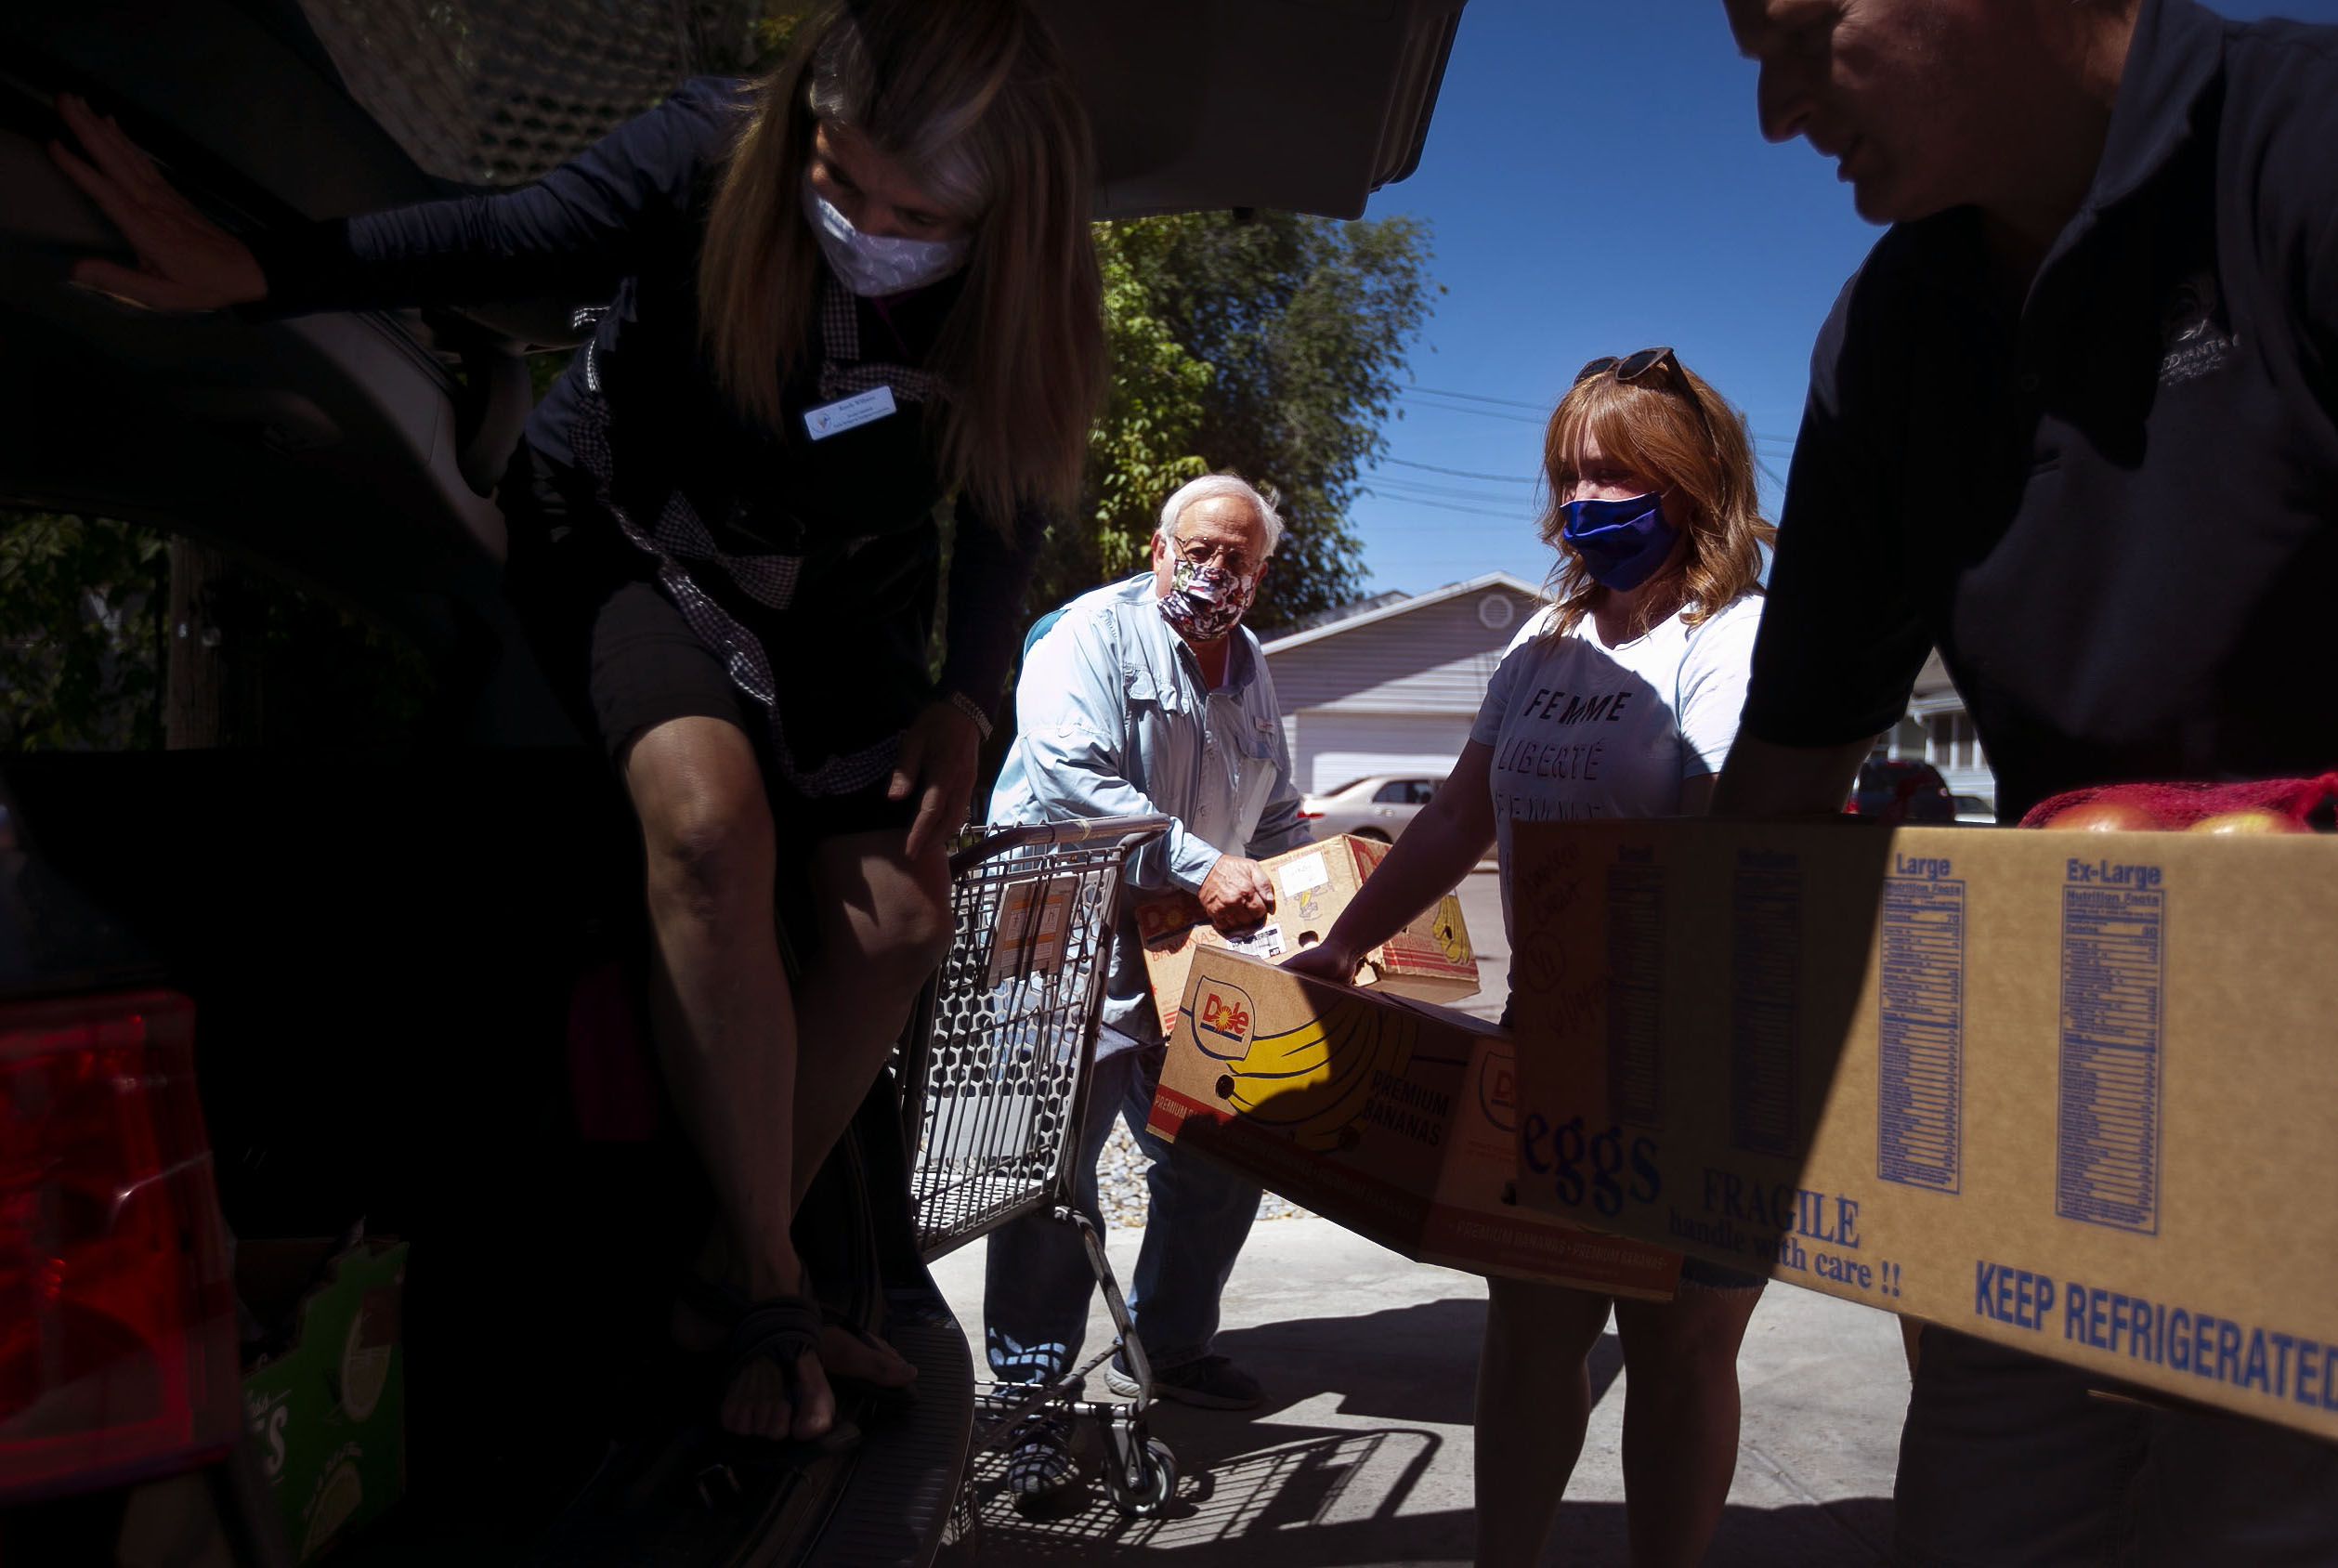 Randy Williams, a member of the Cache Refugee & Immigrant Connection board, left, volunteer Bruce Haslem, Jess Lucero, another board member, and Matt Whitaker, director of the Cache Community Food Pantry, load a car with food donations at the pantry in Logan on Thursday, June 11, 2020. Nonprofits, state and local government and churches have teamed up to assist refugees in northern Utah who work at a meatpacking plant in Hyrum and have tested positive for COVID-19. The recent rise in cases statewide is attributed to the outbreak at JBS Hyrum Beef where many refugees and immigrants work.